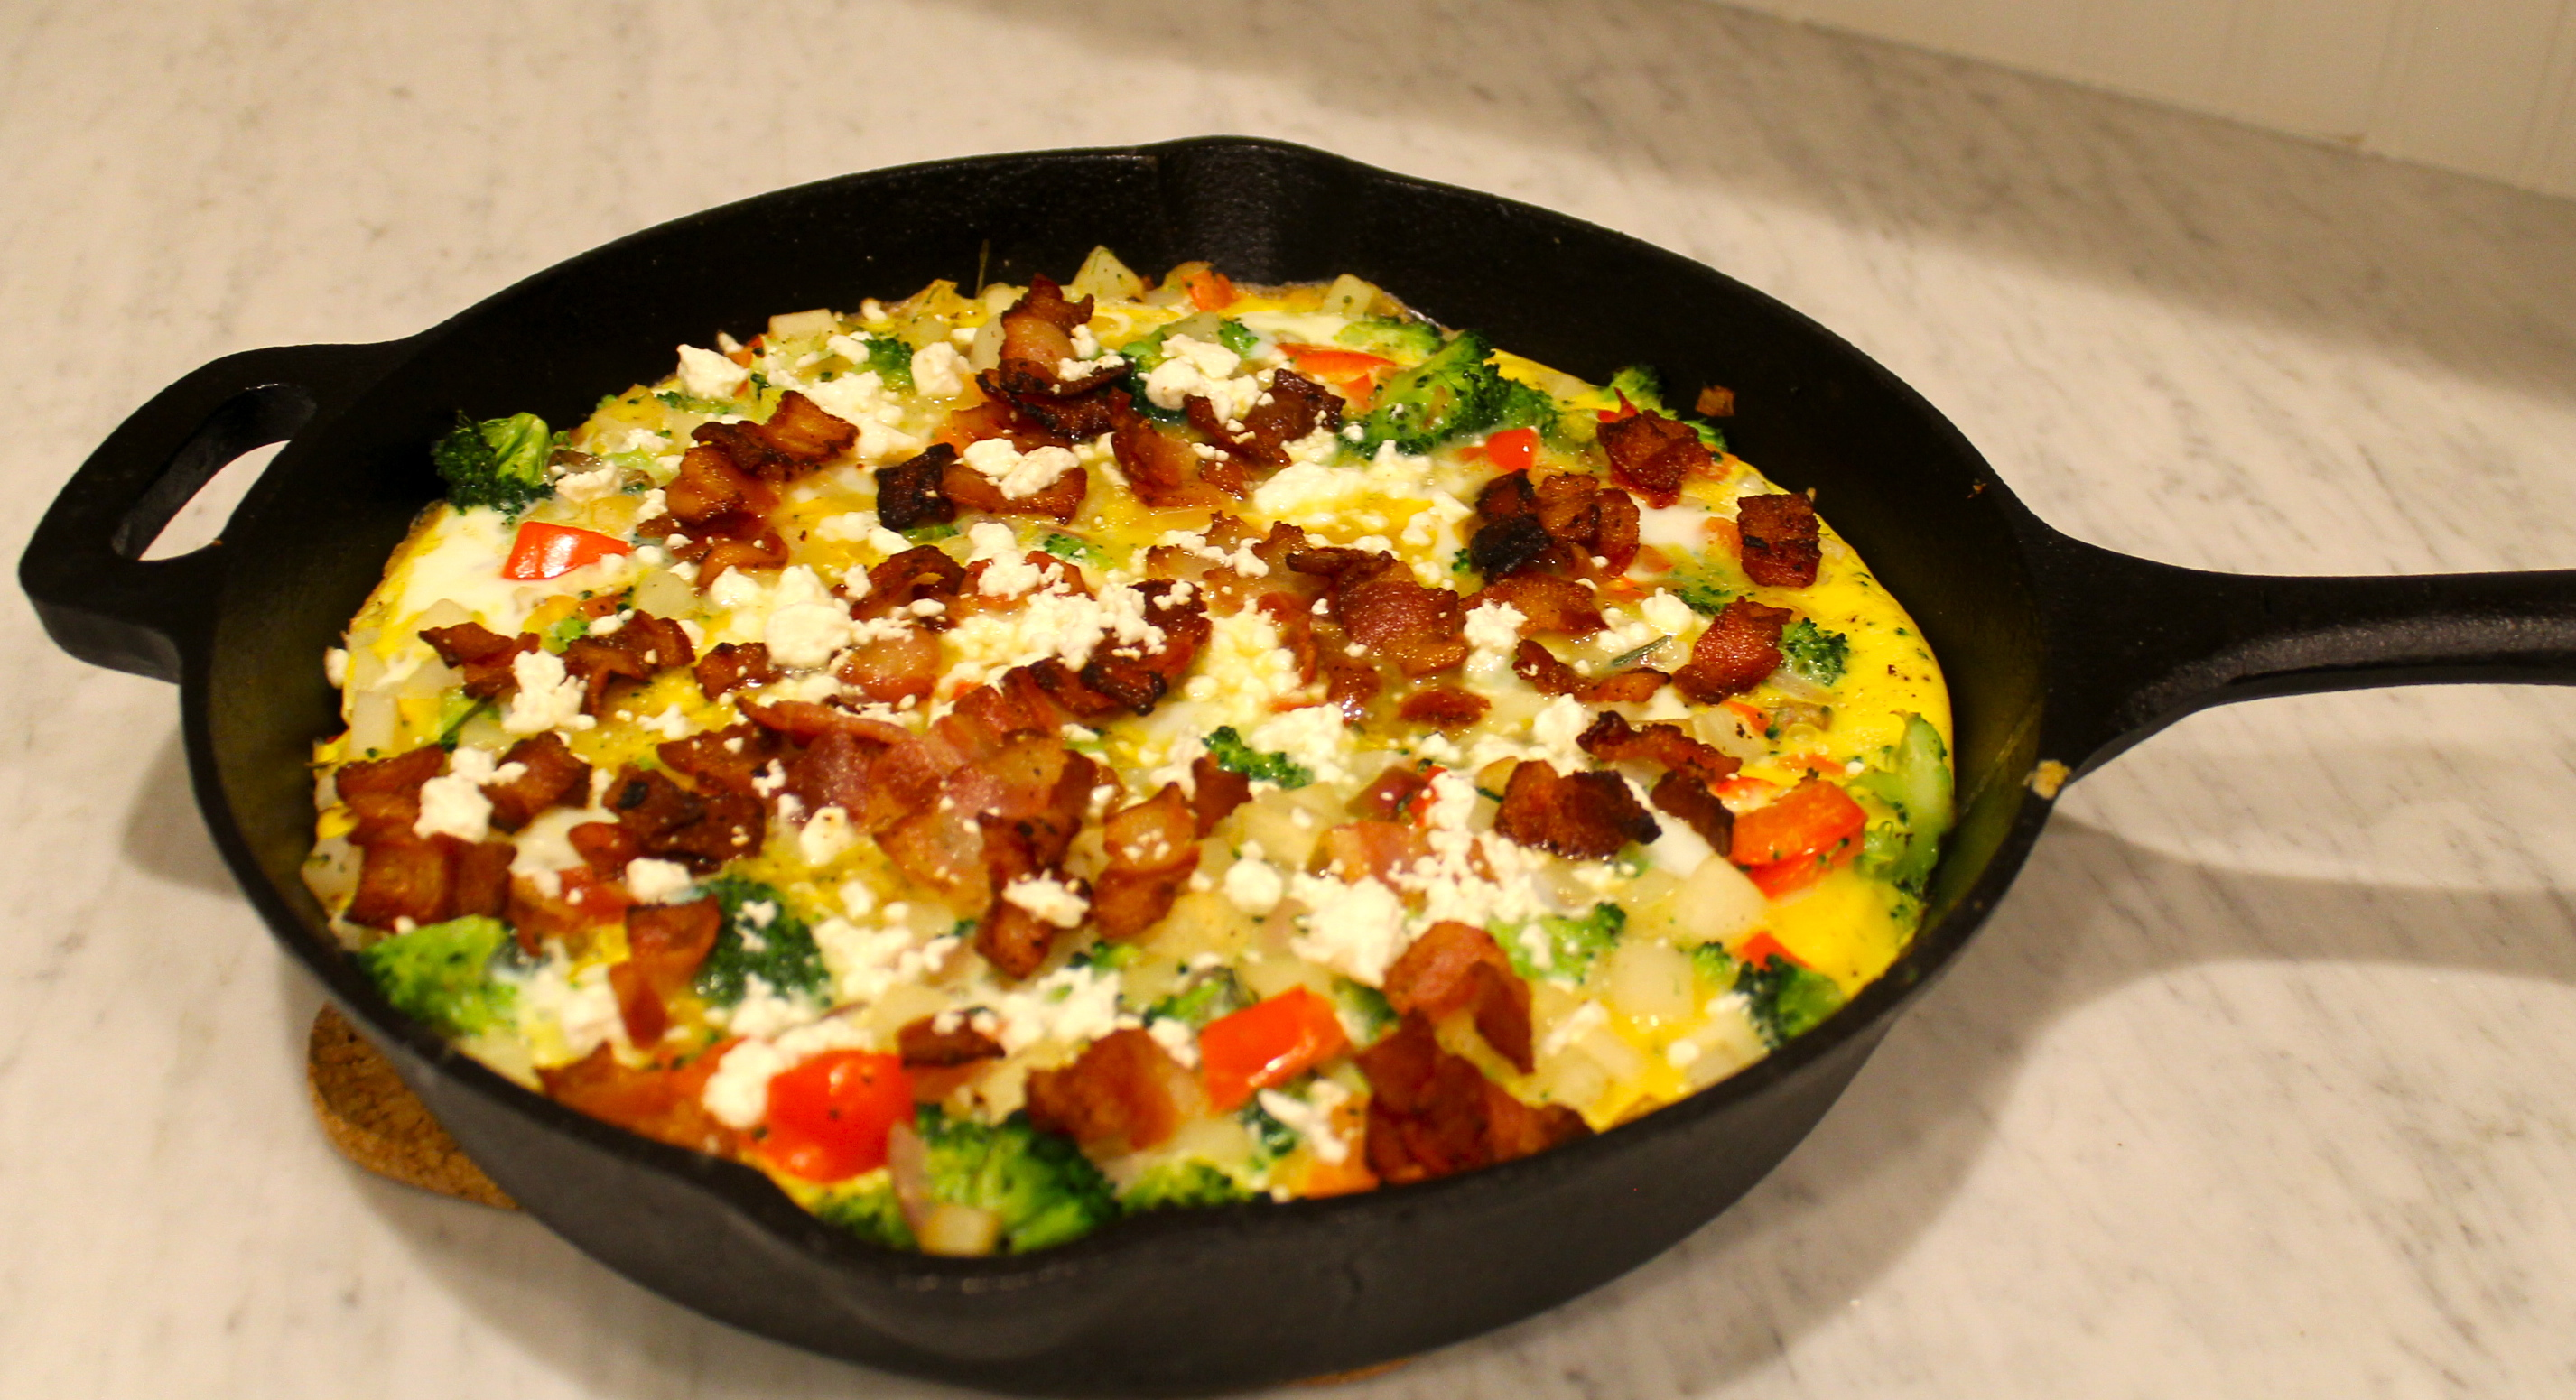 IMG 1820 - Vegetable Frittata